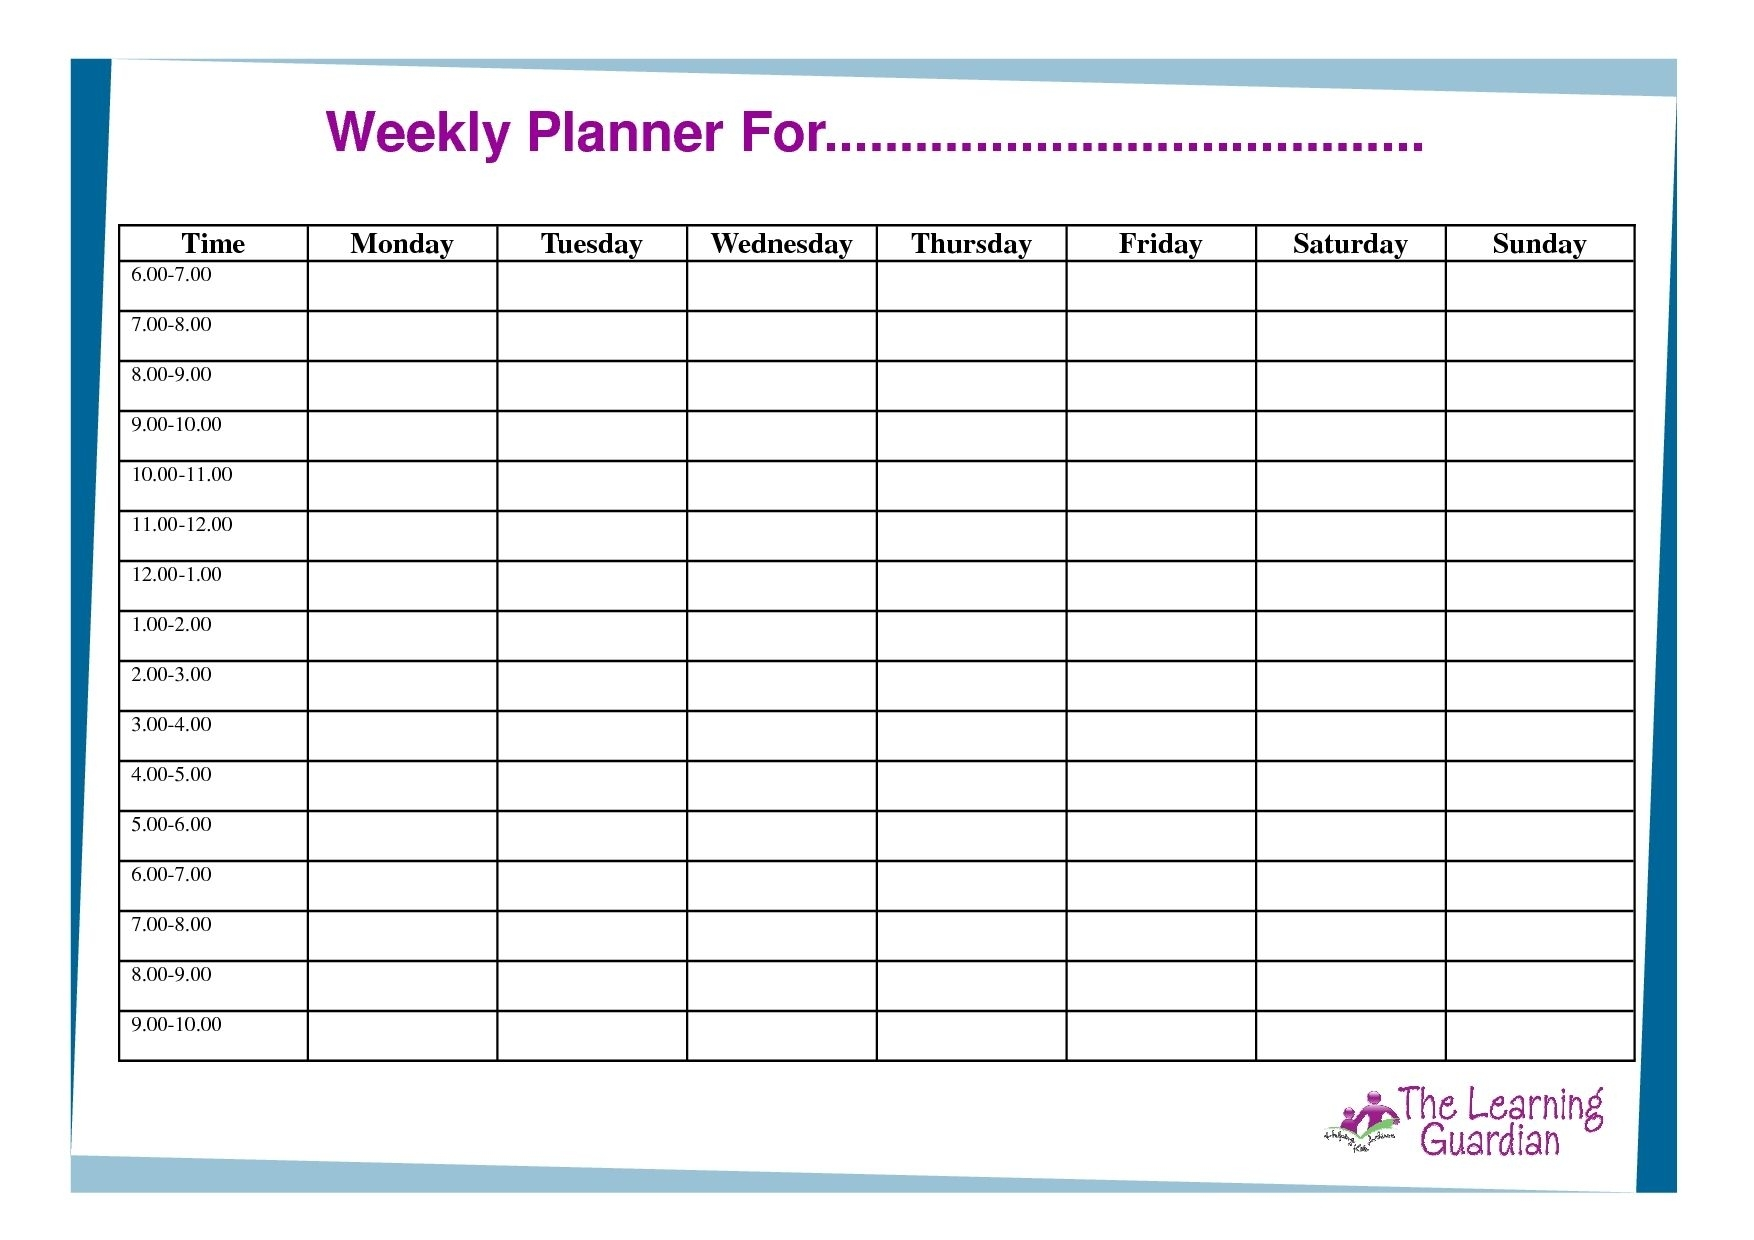 Schedule Template Day Week Calendar Free | Smorad pertaining to 7 Day Week Free Schedule Template